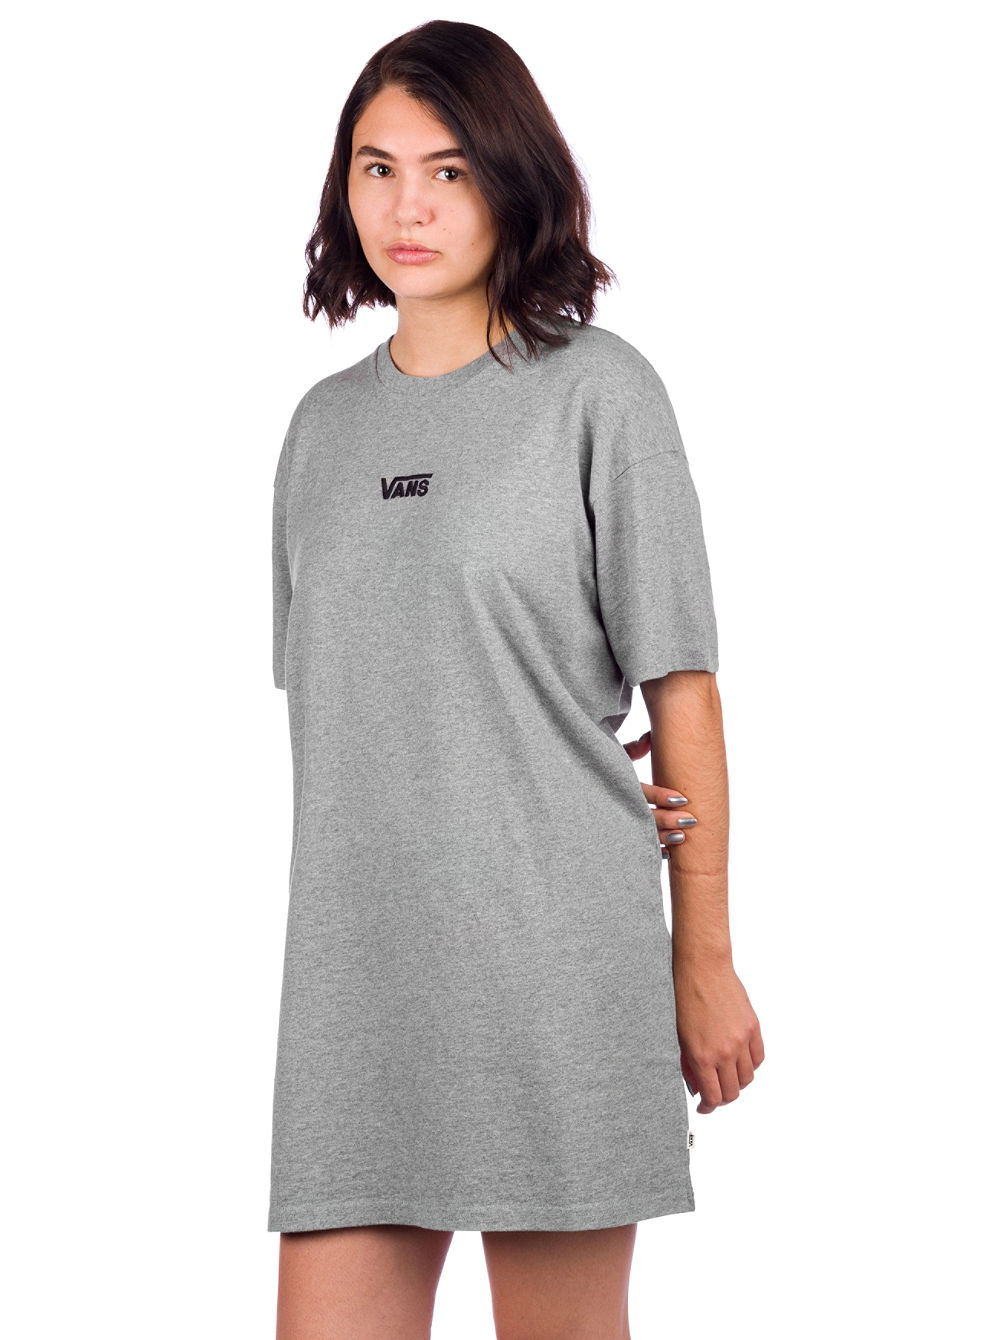 Center Vee Tee Robe